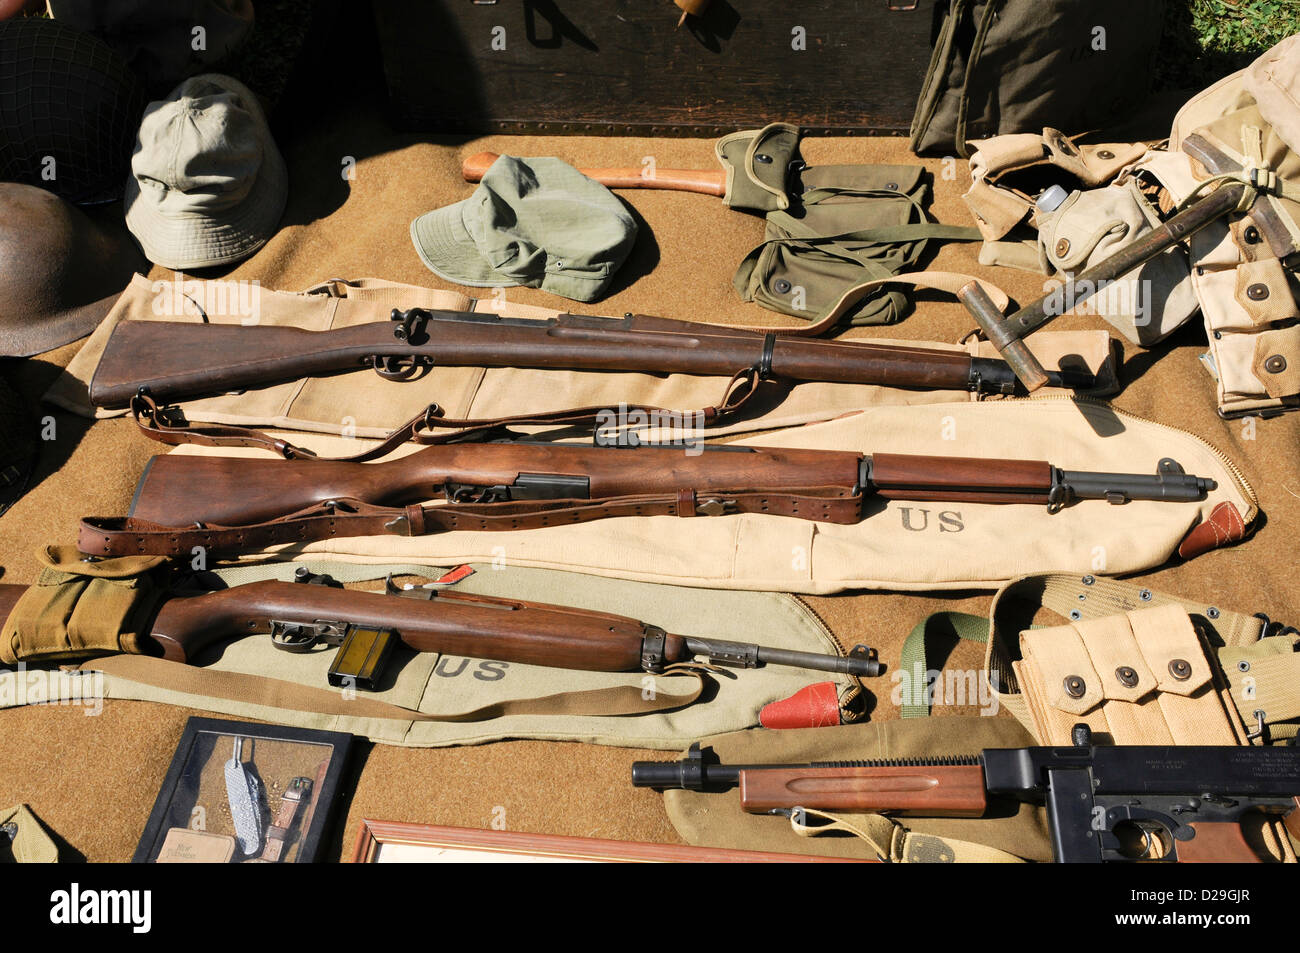 World War Ii Weapons - Stock Image